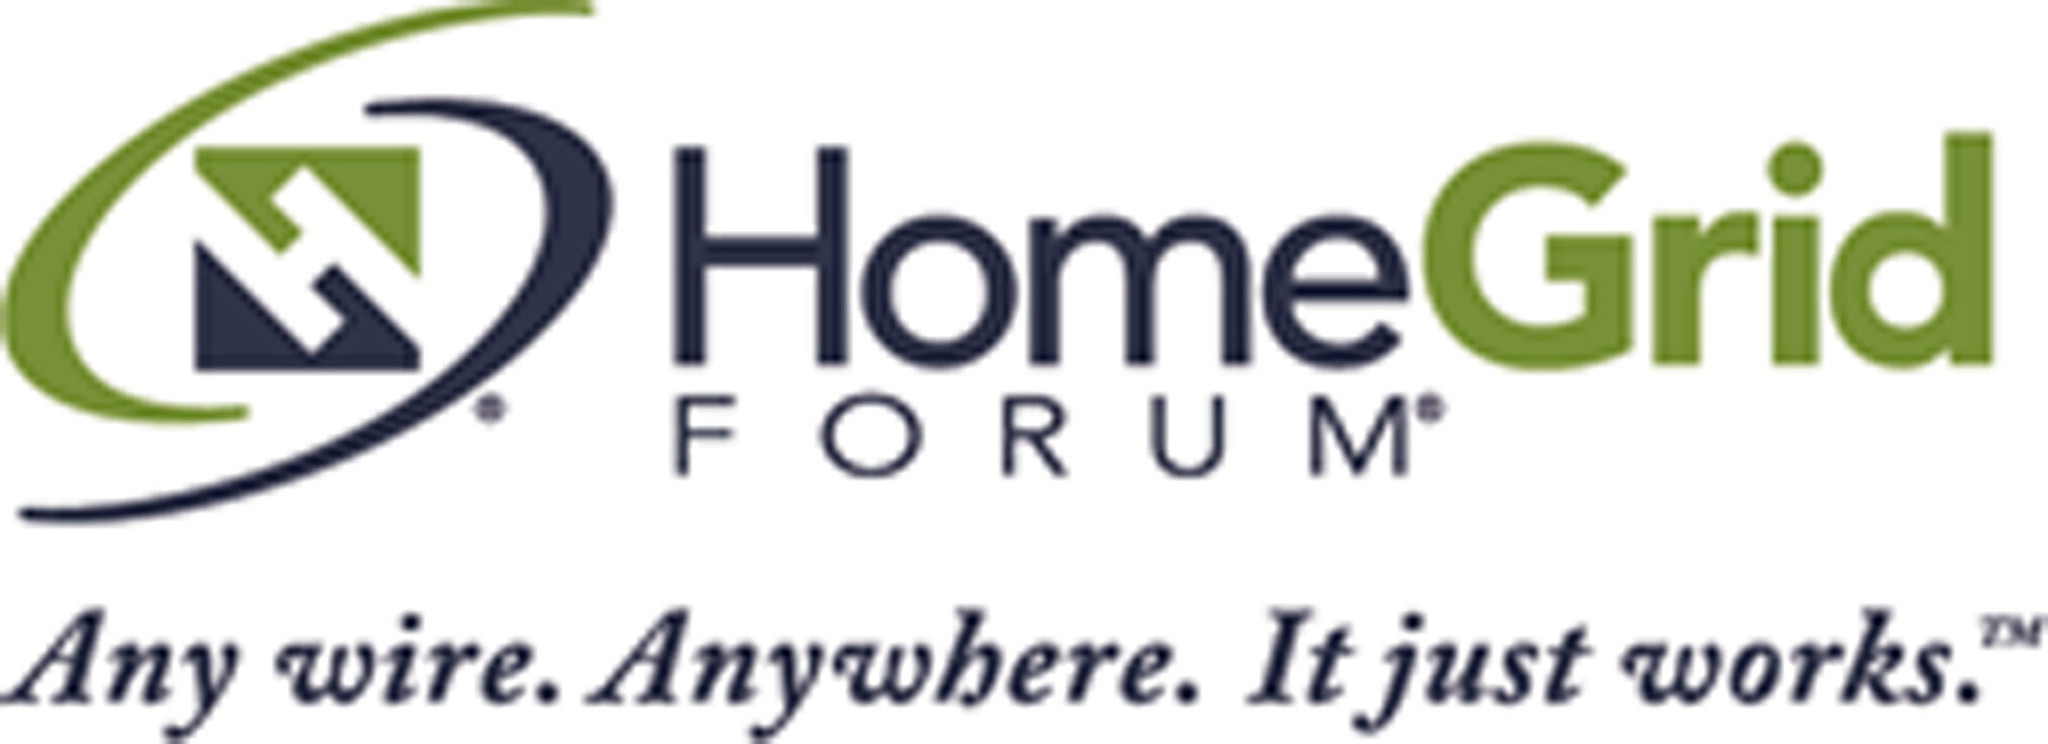 Home Grid Forum